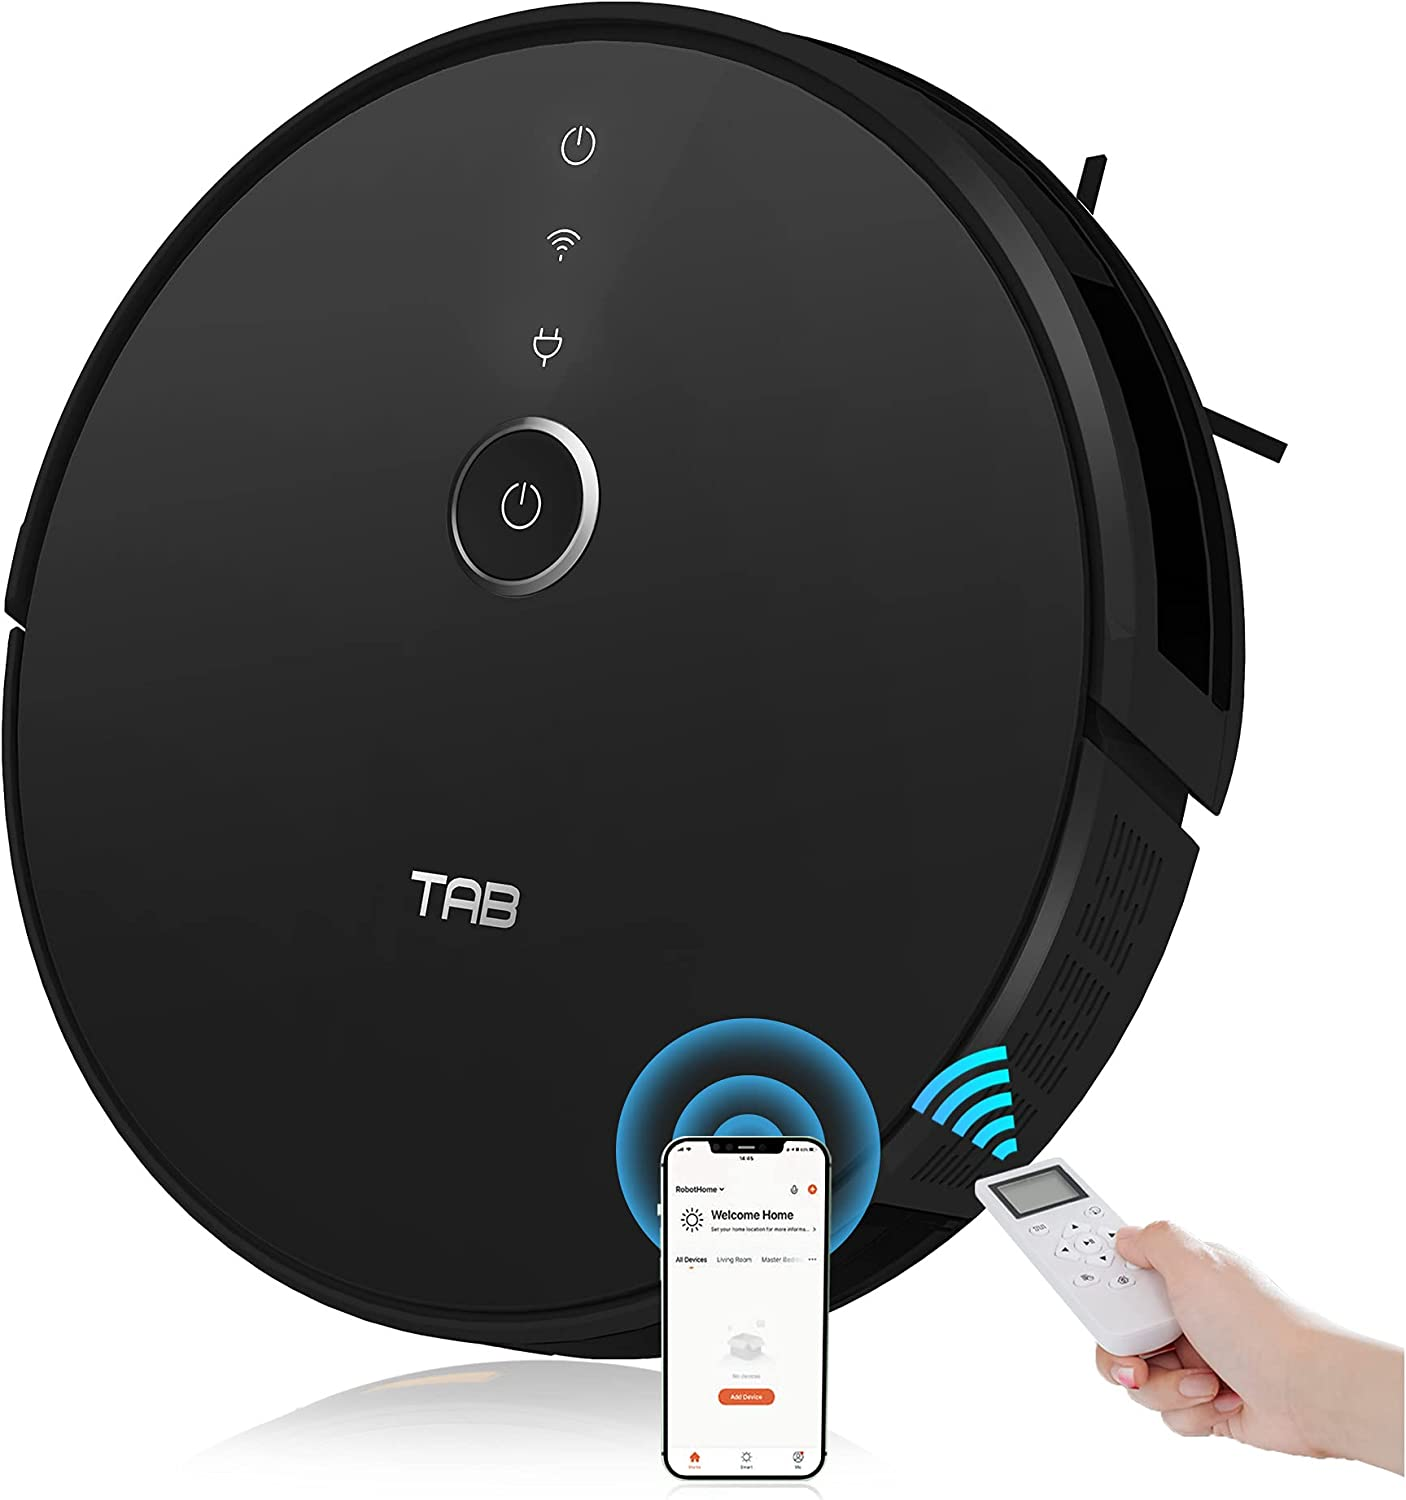 TAB Robot Vacuum Cleaner, Quiet&Slim Robotic Vacuums with 2200Pa Suction, Infrared Sensor, Self-Charging, Works with WiFi/App/Alexa/Google Home, Ideal for Pet Hair, Carpet, Hard Floors